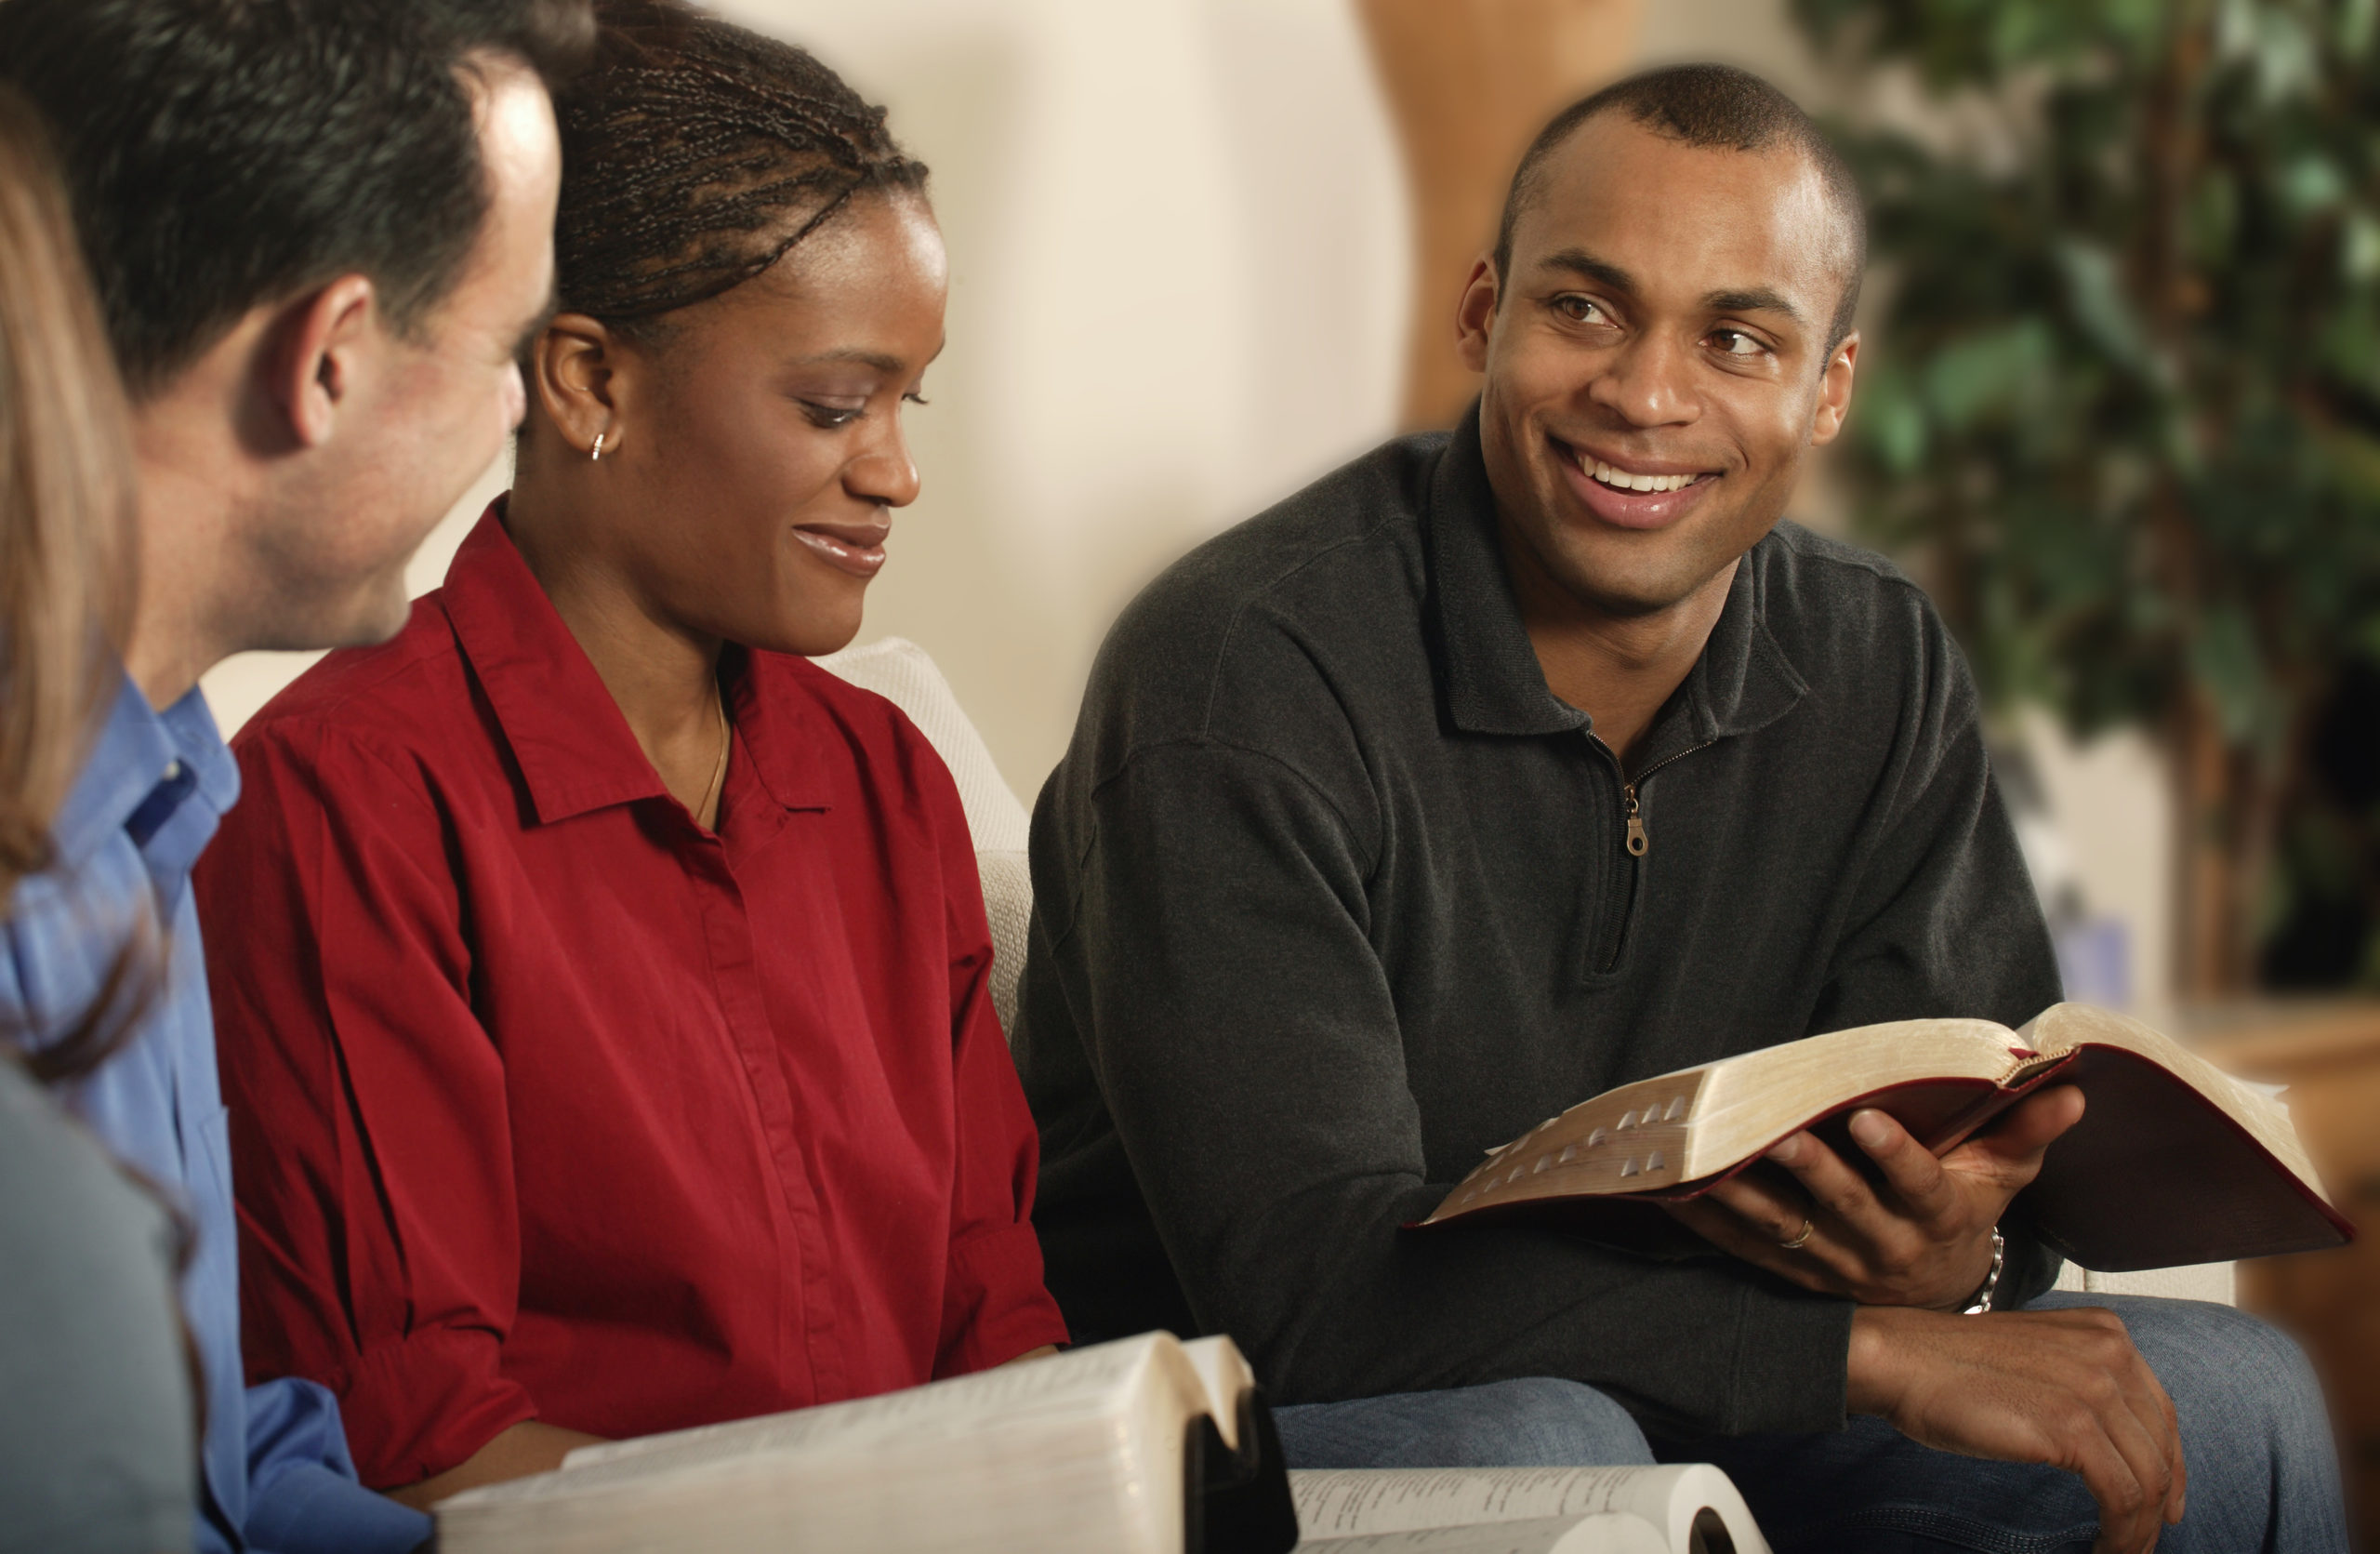 Man-with-Bible-Study-Group